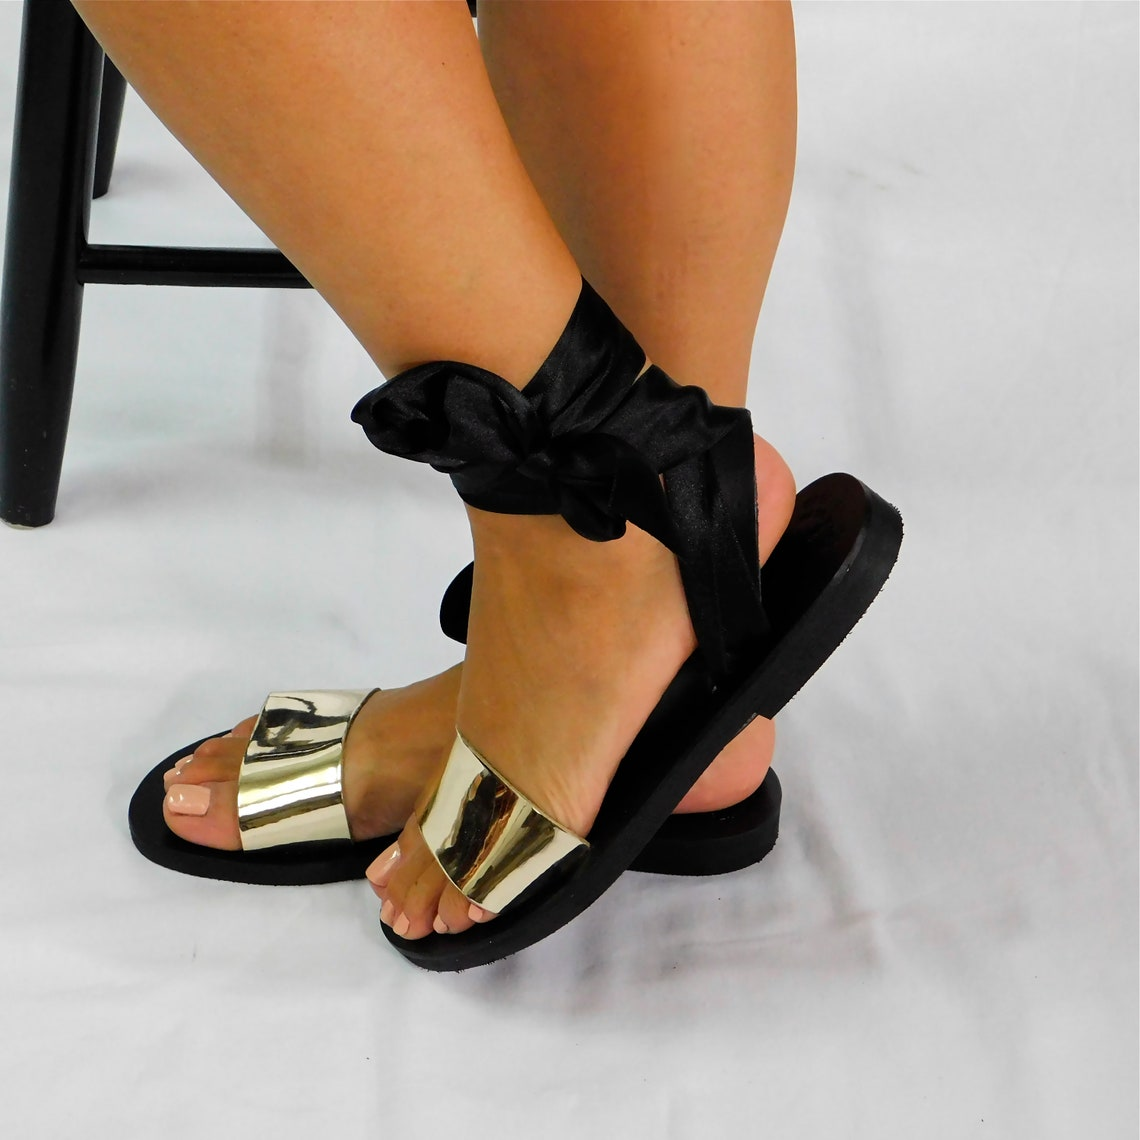 Greek leather sandals, black and gold sandals, ribbon sandals, ankle strap sandals, metallic leather sandals, leather flats, strappy sandals